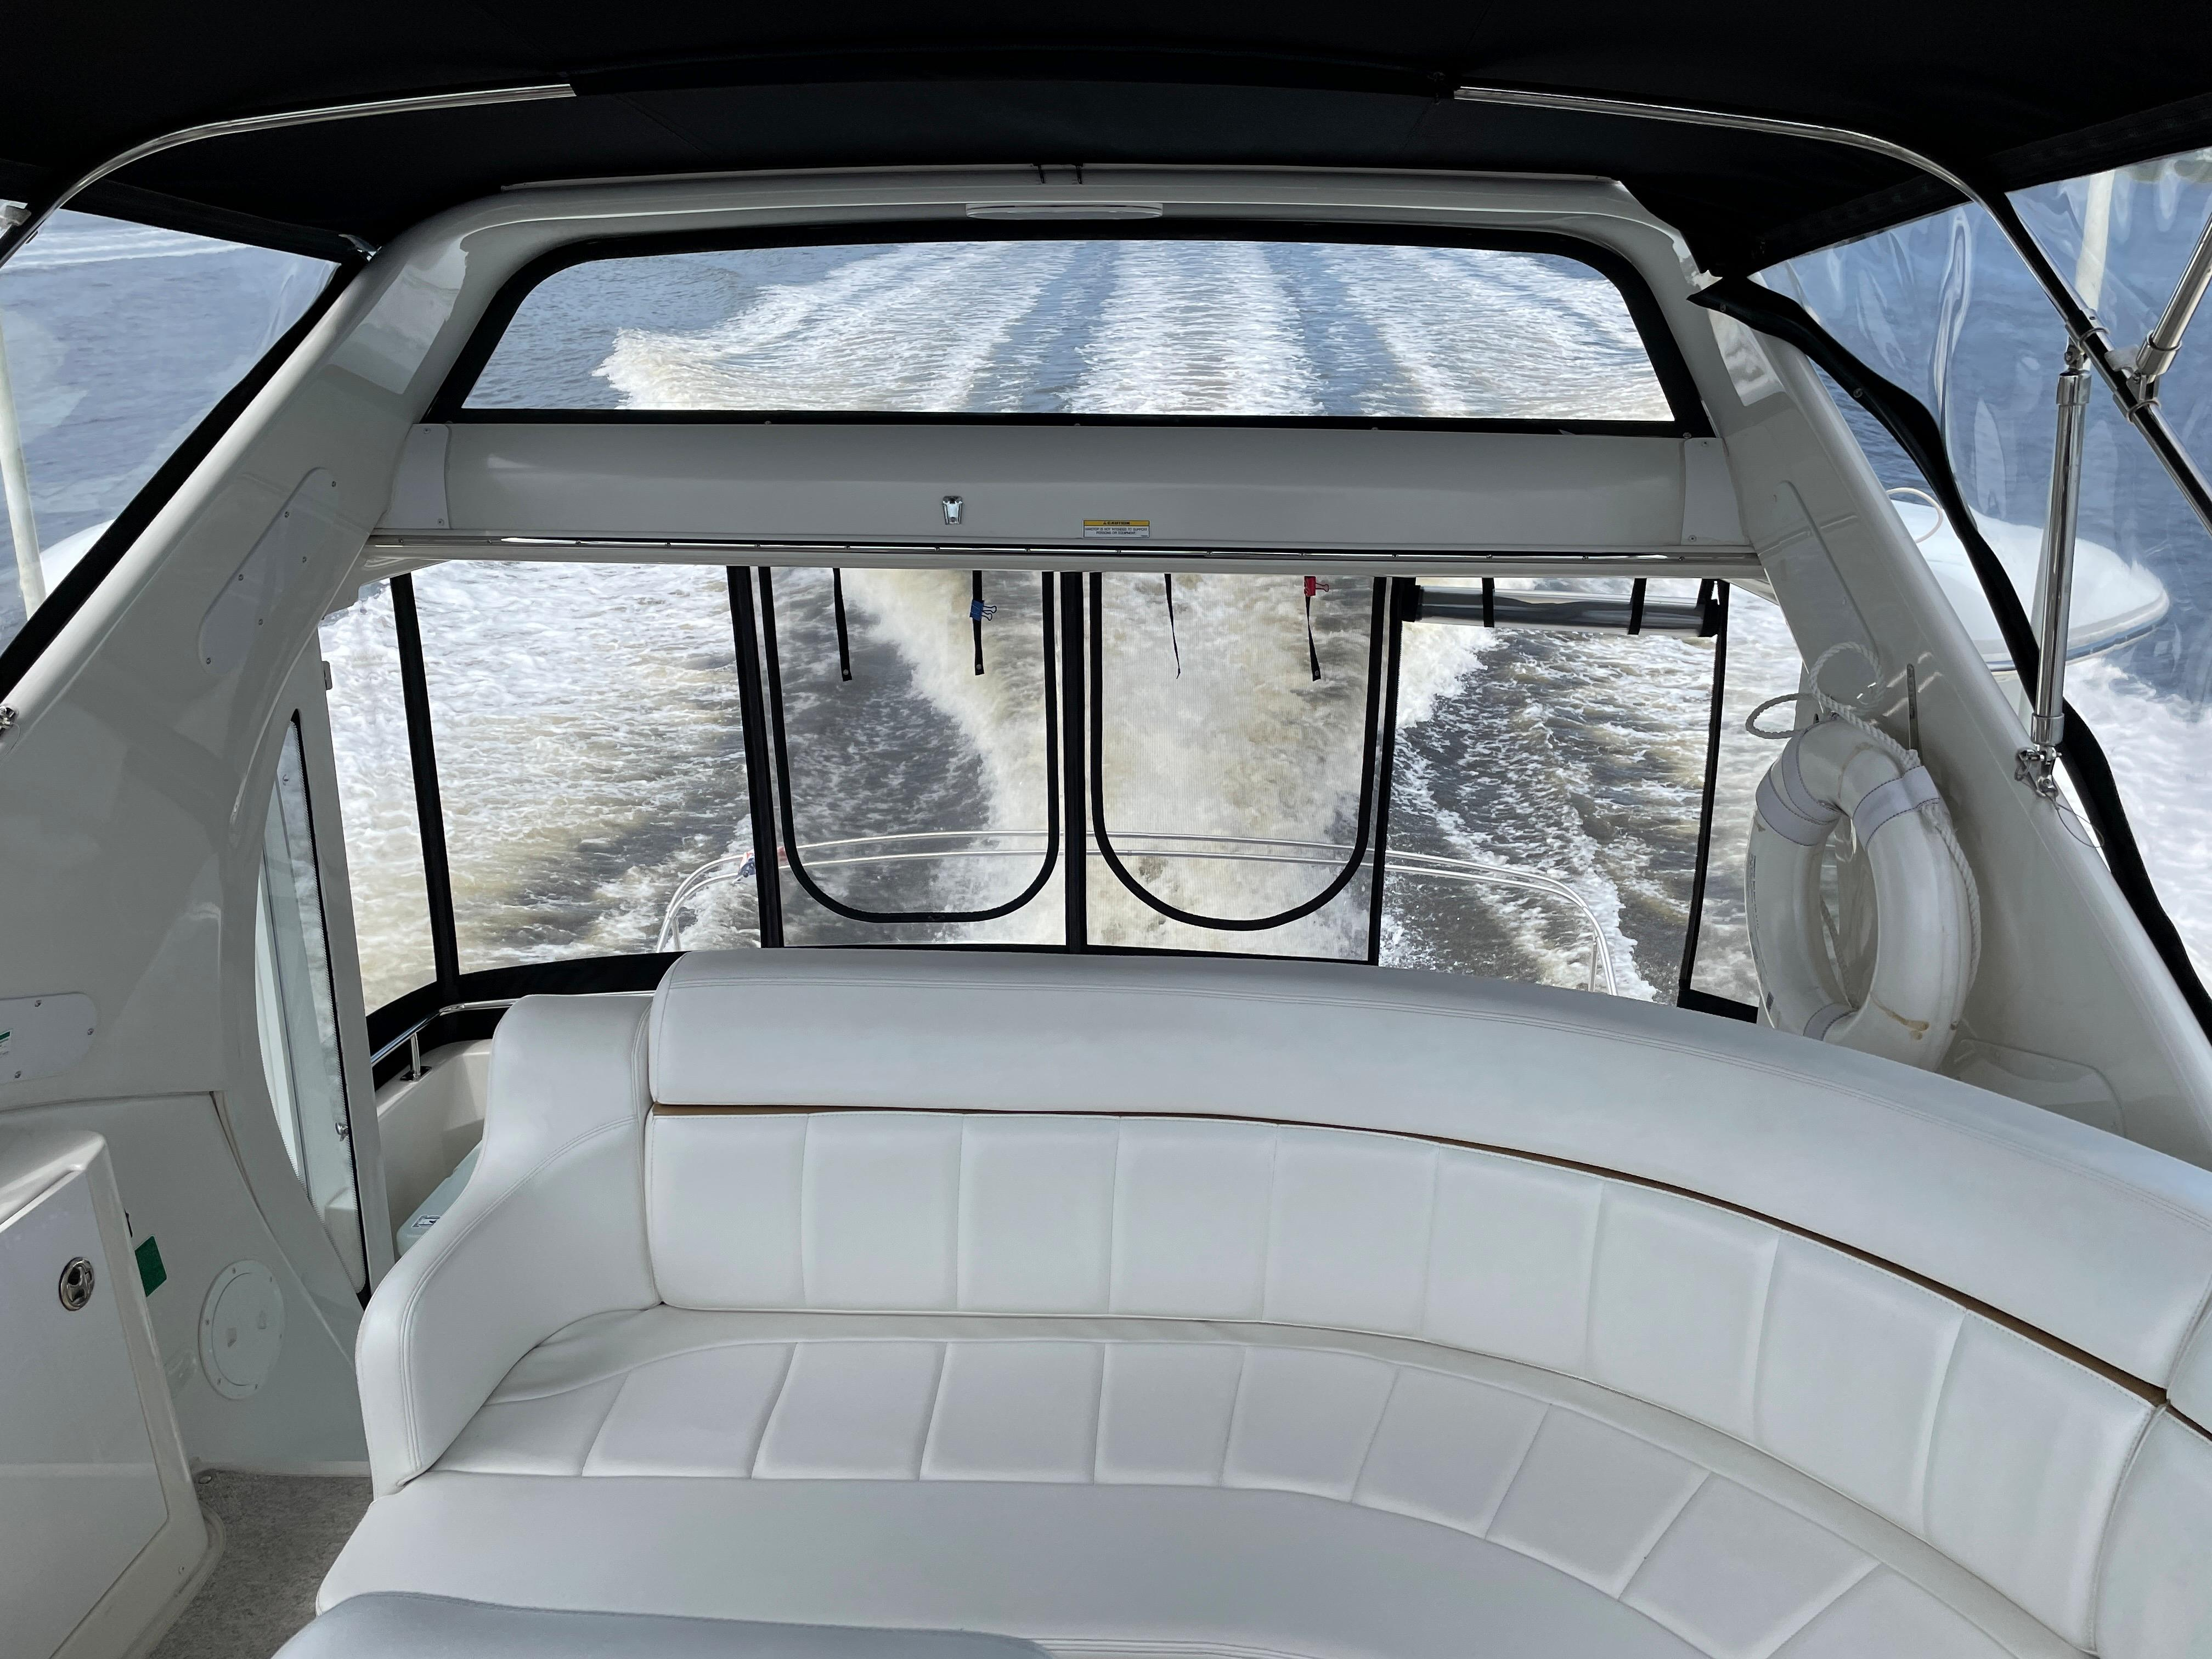 Carver 444 Cockpit Motor Yacht - Aft View from Helm